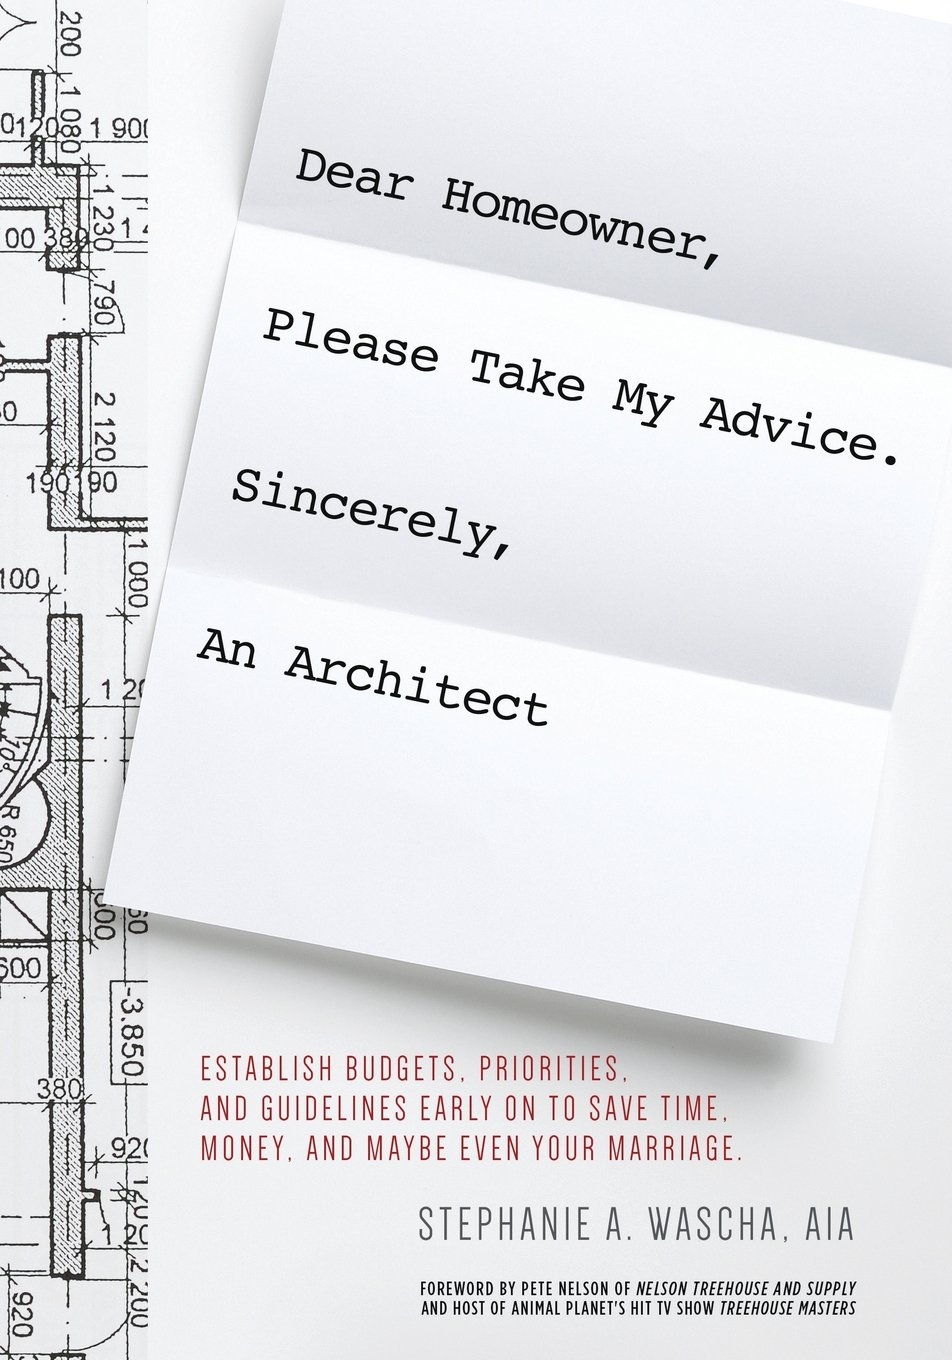 Dear Homeowner, Please Take My Advice. Sincerely, an Architect: A Guide to Help You Establish Budgets, Priorities, and Guidelines Early on to Save Time, Money, and Maybe Even Your Marriage